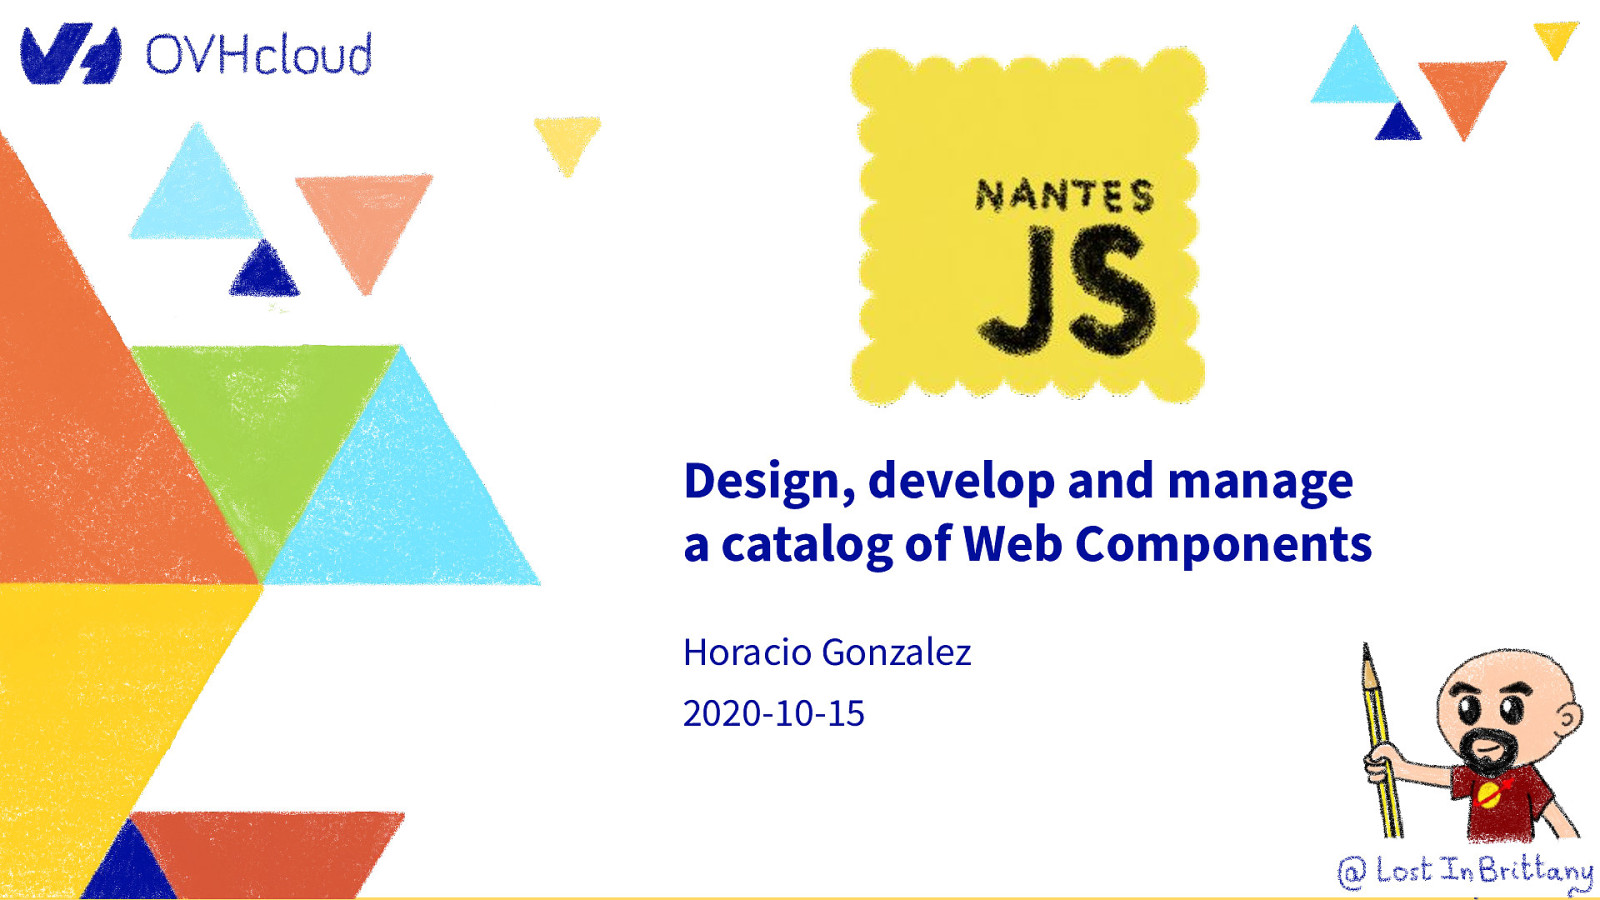 Design, develop and manage  a catalog of Web Components